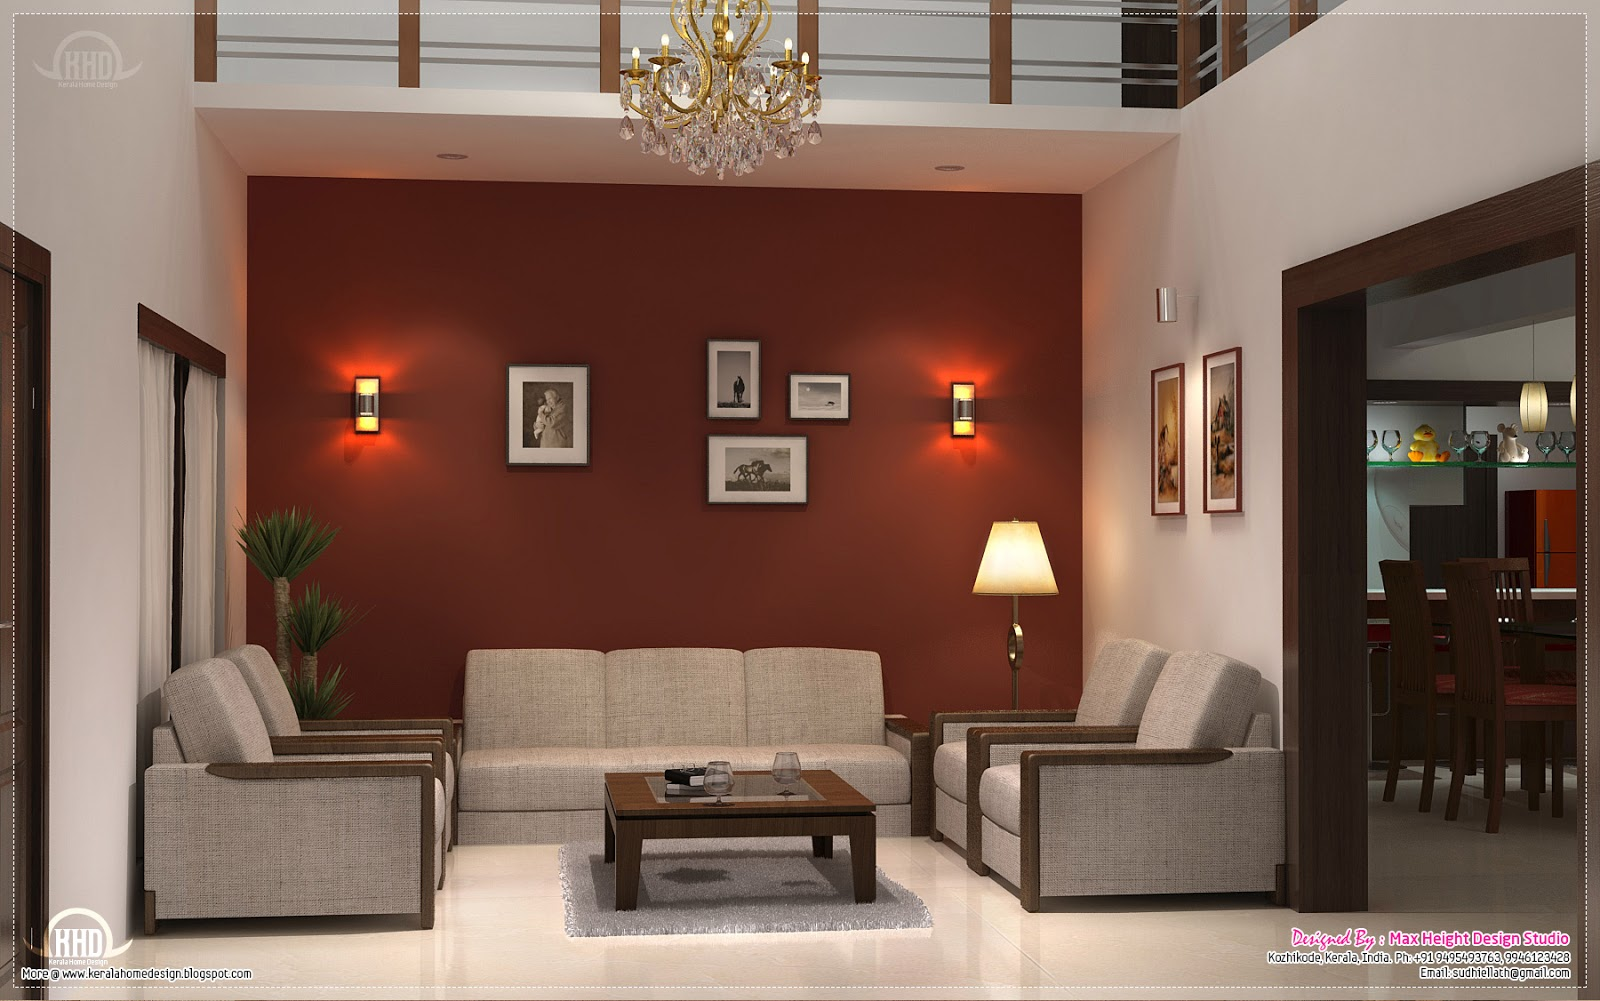 Home interior design ideas home kerala plans Interior design ideas in small home